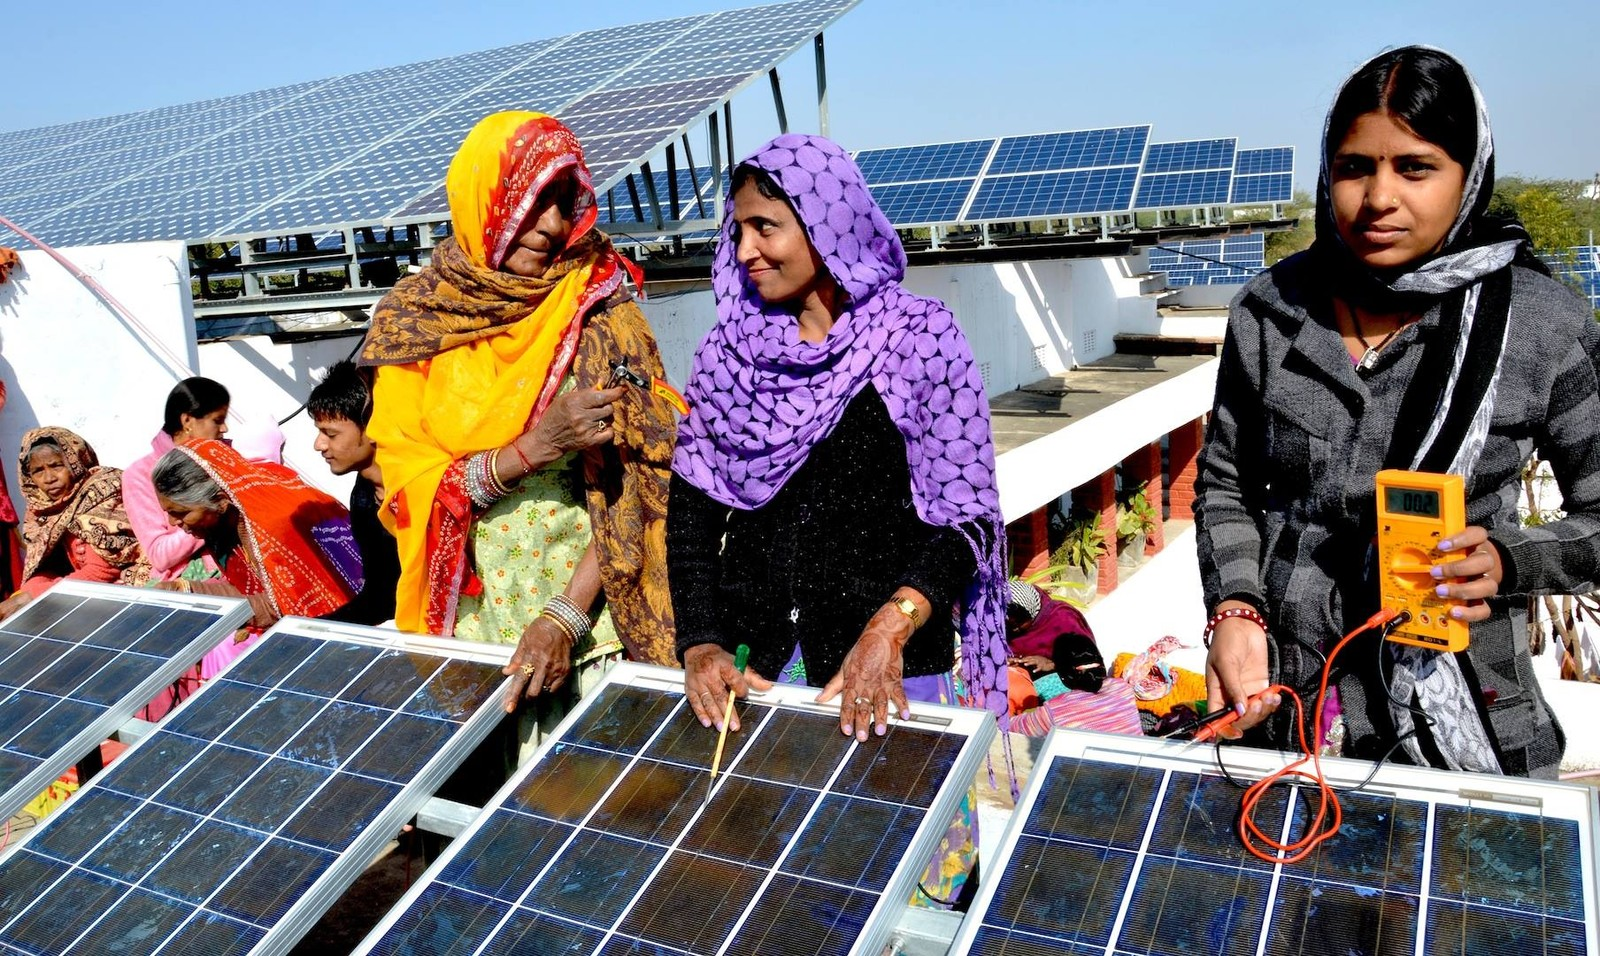 Women stand behind a solar panel in an image taken for Barefoot College in India.